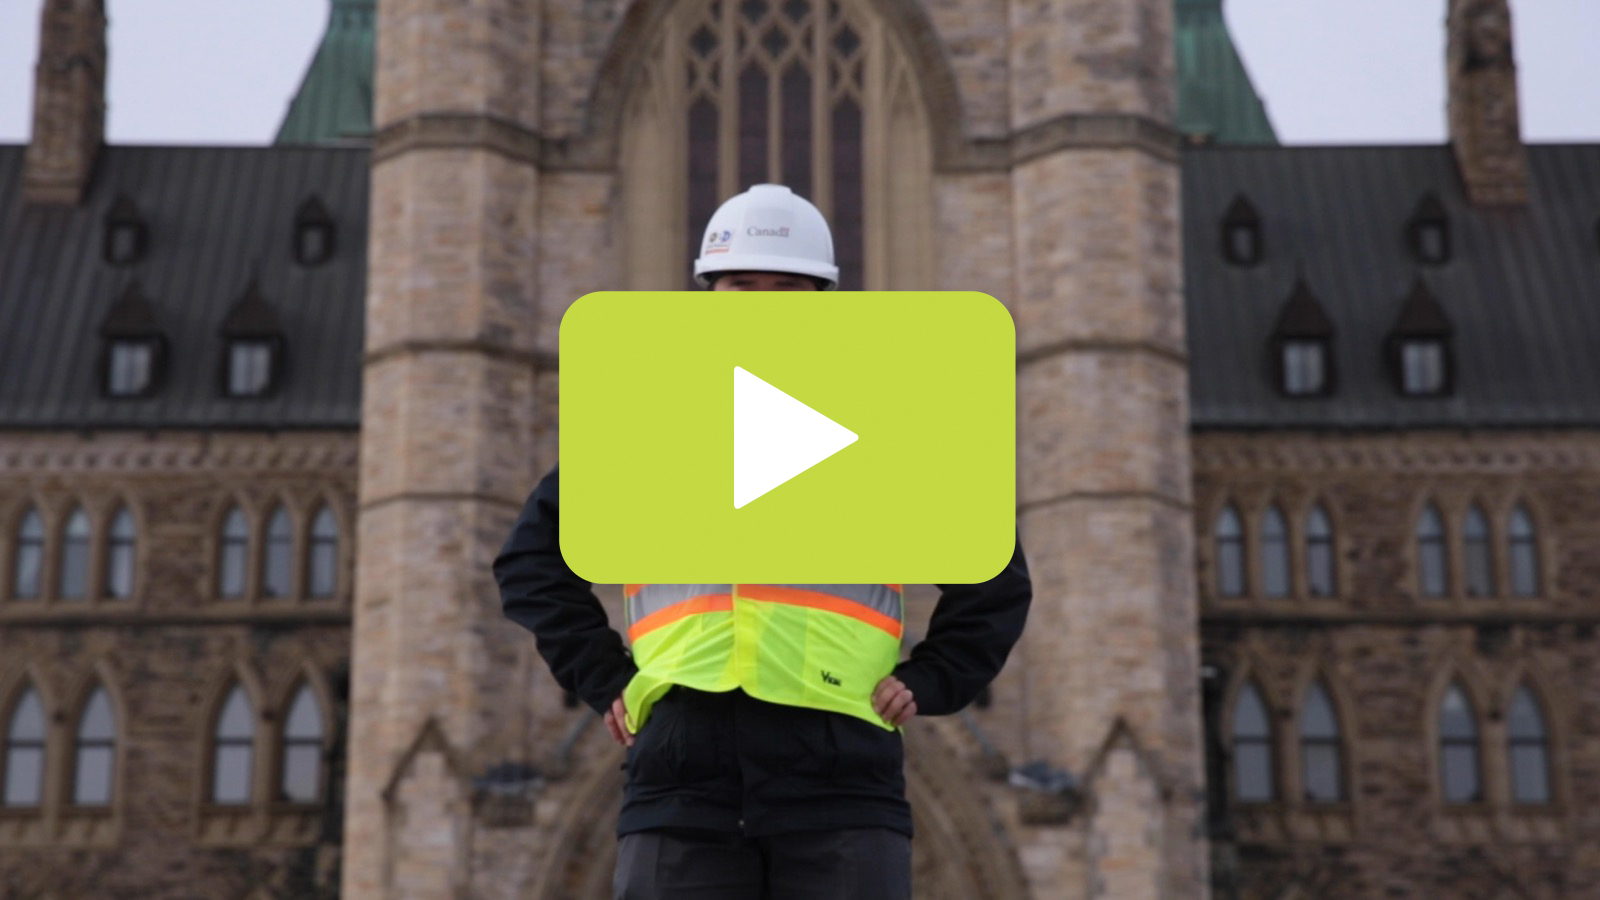 View the video: Meet the engineer in charge of Centre Block assessments